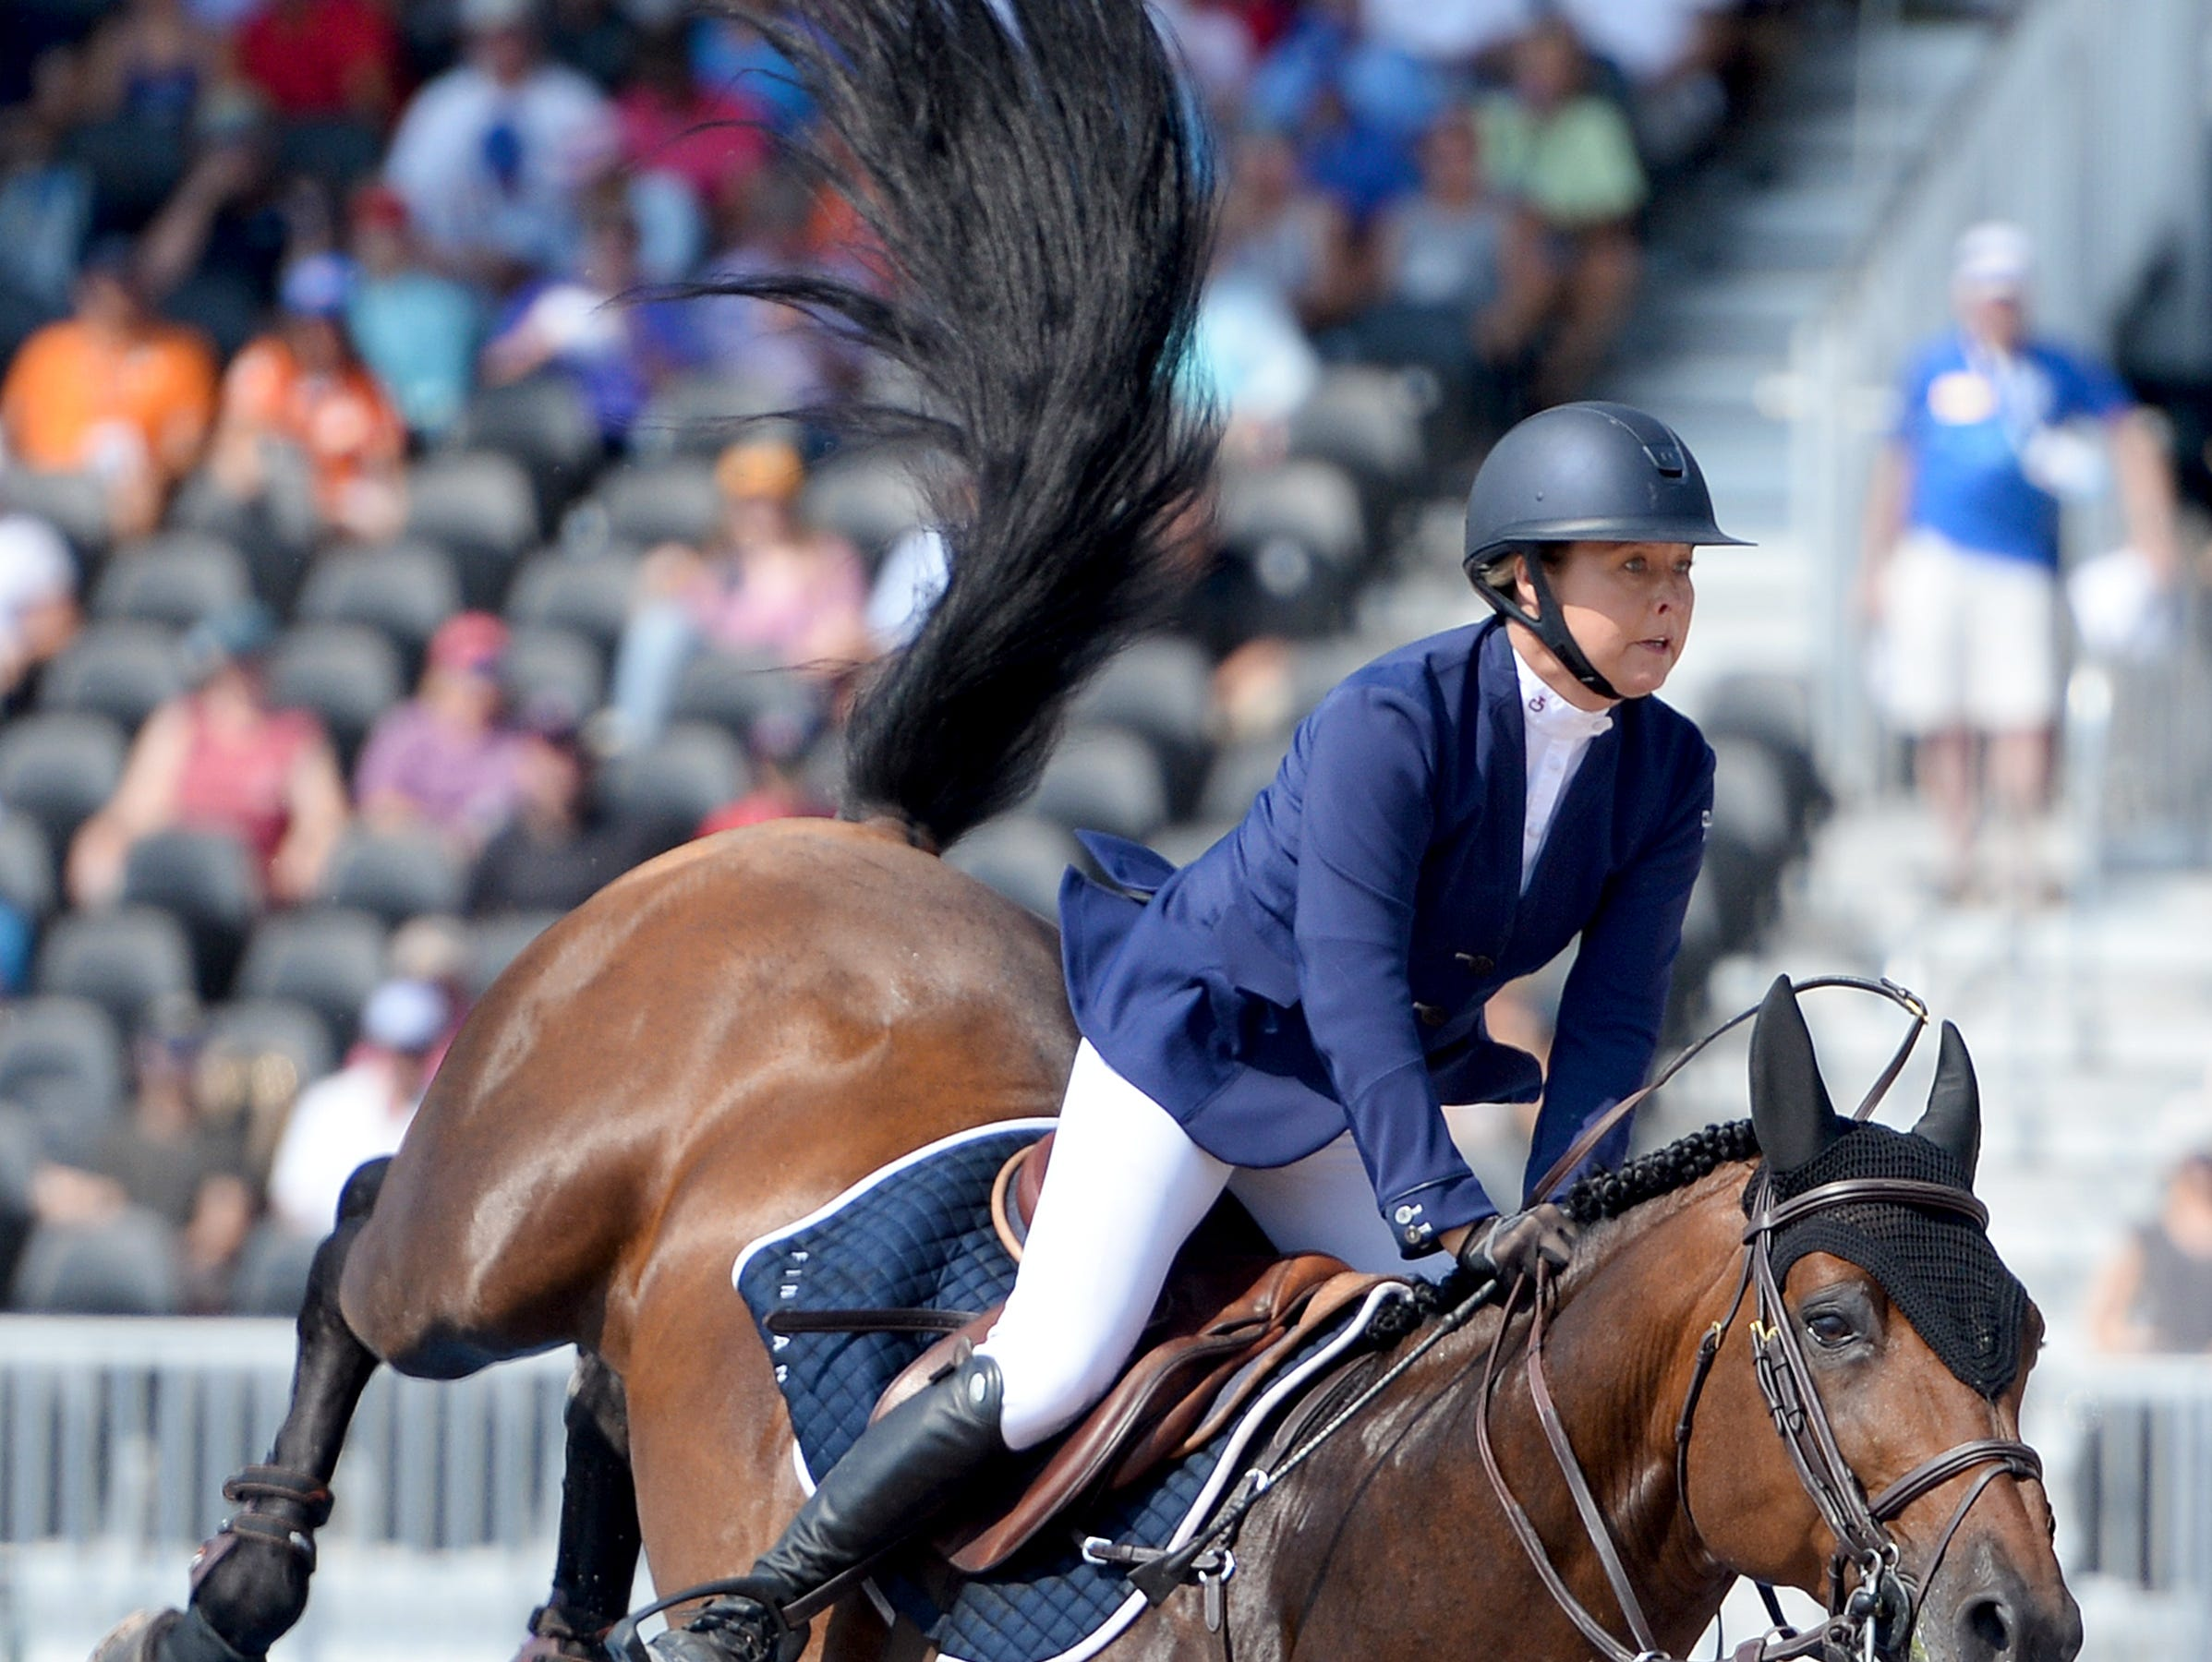 Finland's Juulia Jylas, on Finishing Touch Wareslage, competes in the team jumping competition of the FEI World Equestrian Games at the Tryon International Equestrian Center on Sept. 20, 2018.